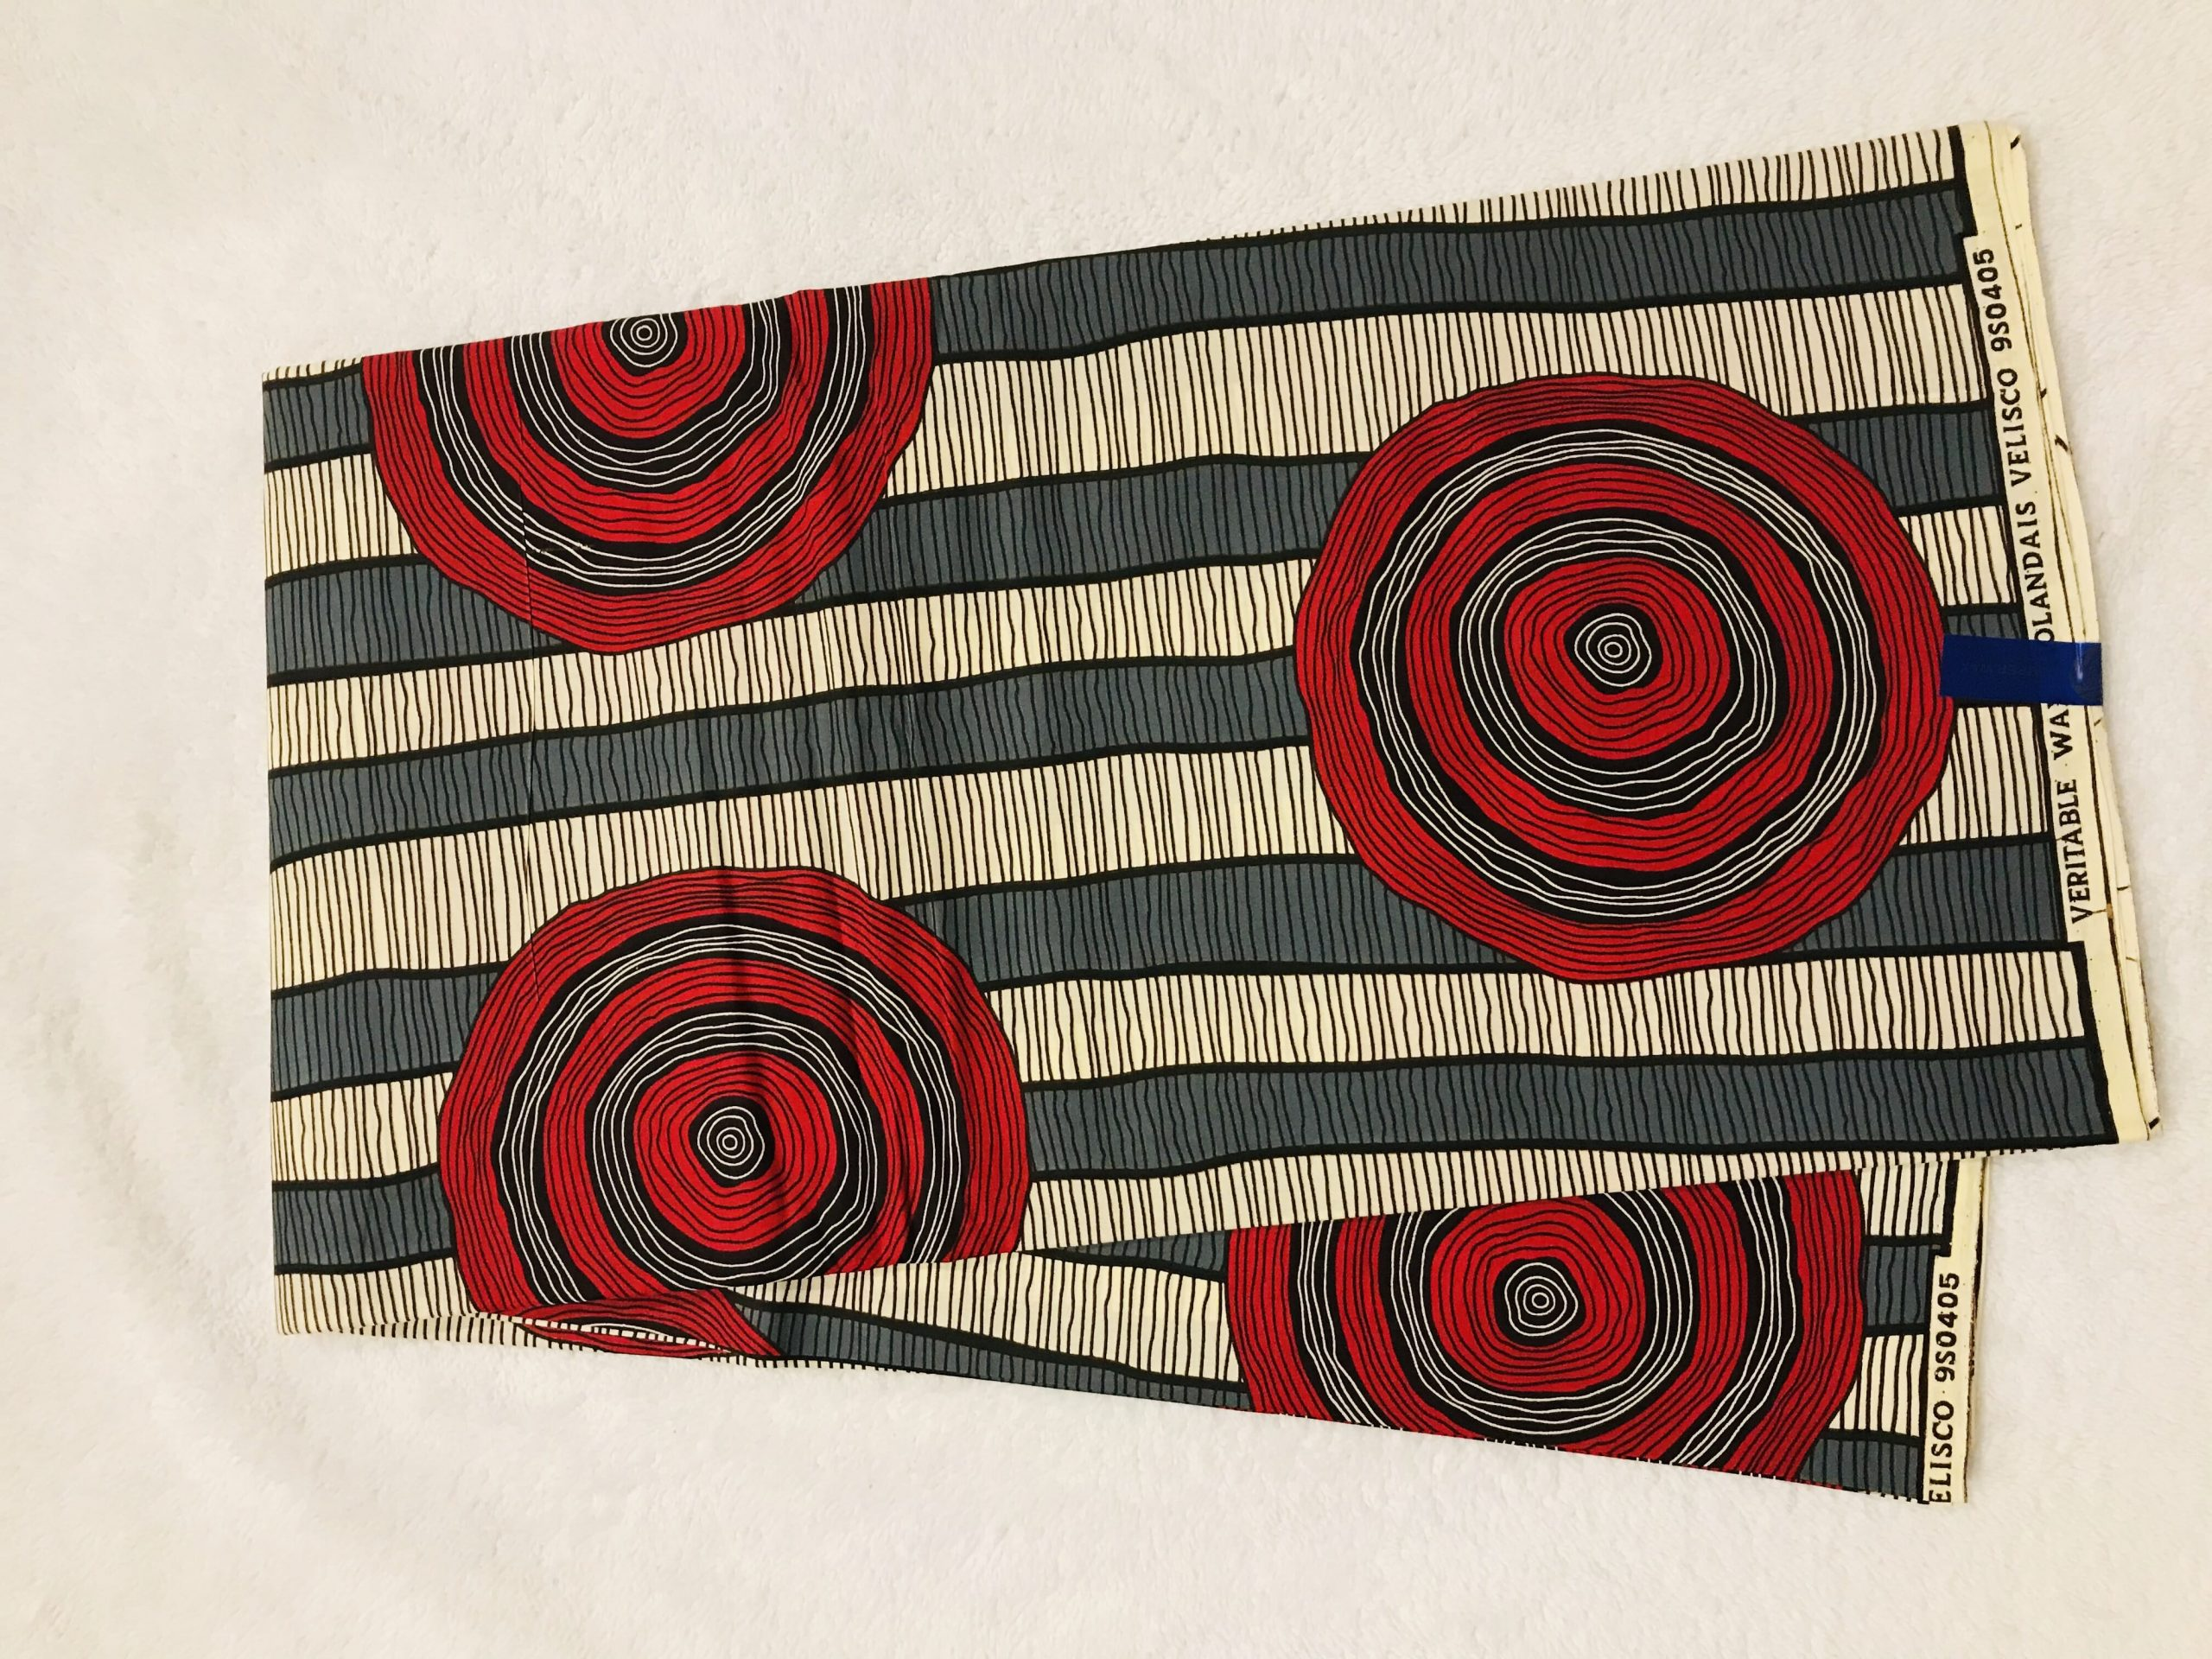 African Wax 6 yards red gray and tan  lines & circles design real African print. Ankanra 100% cotton material.